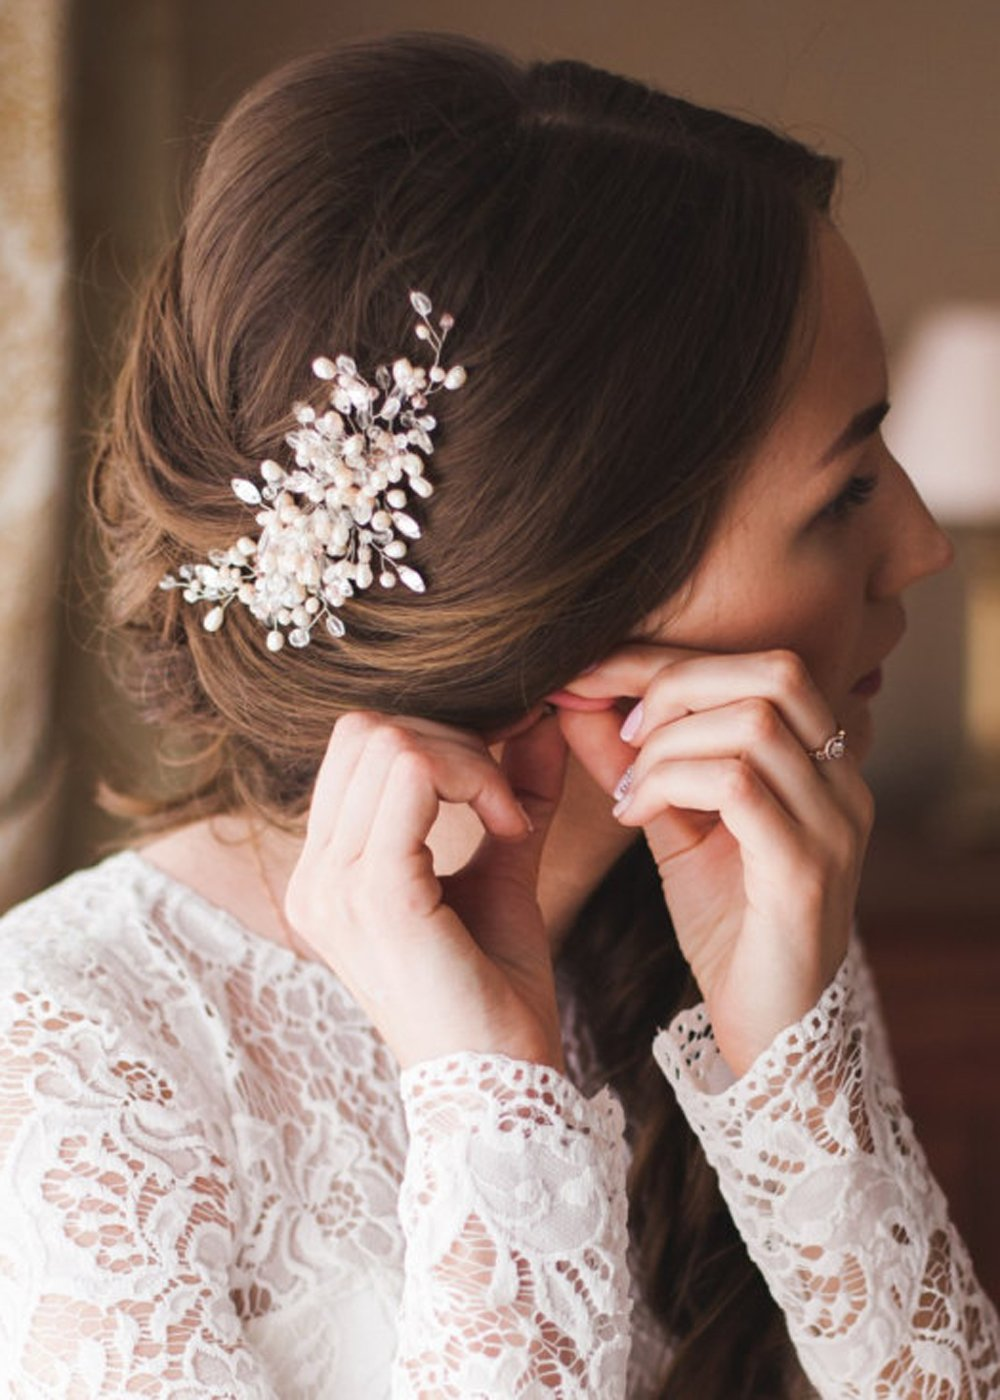 Kercisbeauty Handmade Wedding Crystal Hair Daily bargain specialty shop sale Combs with for Pearls